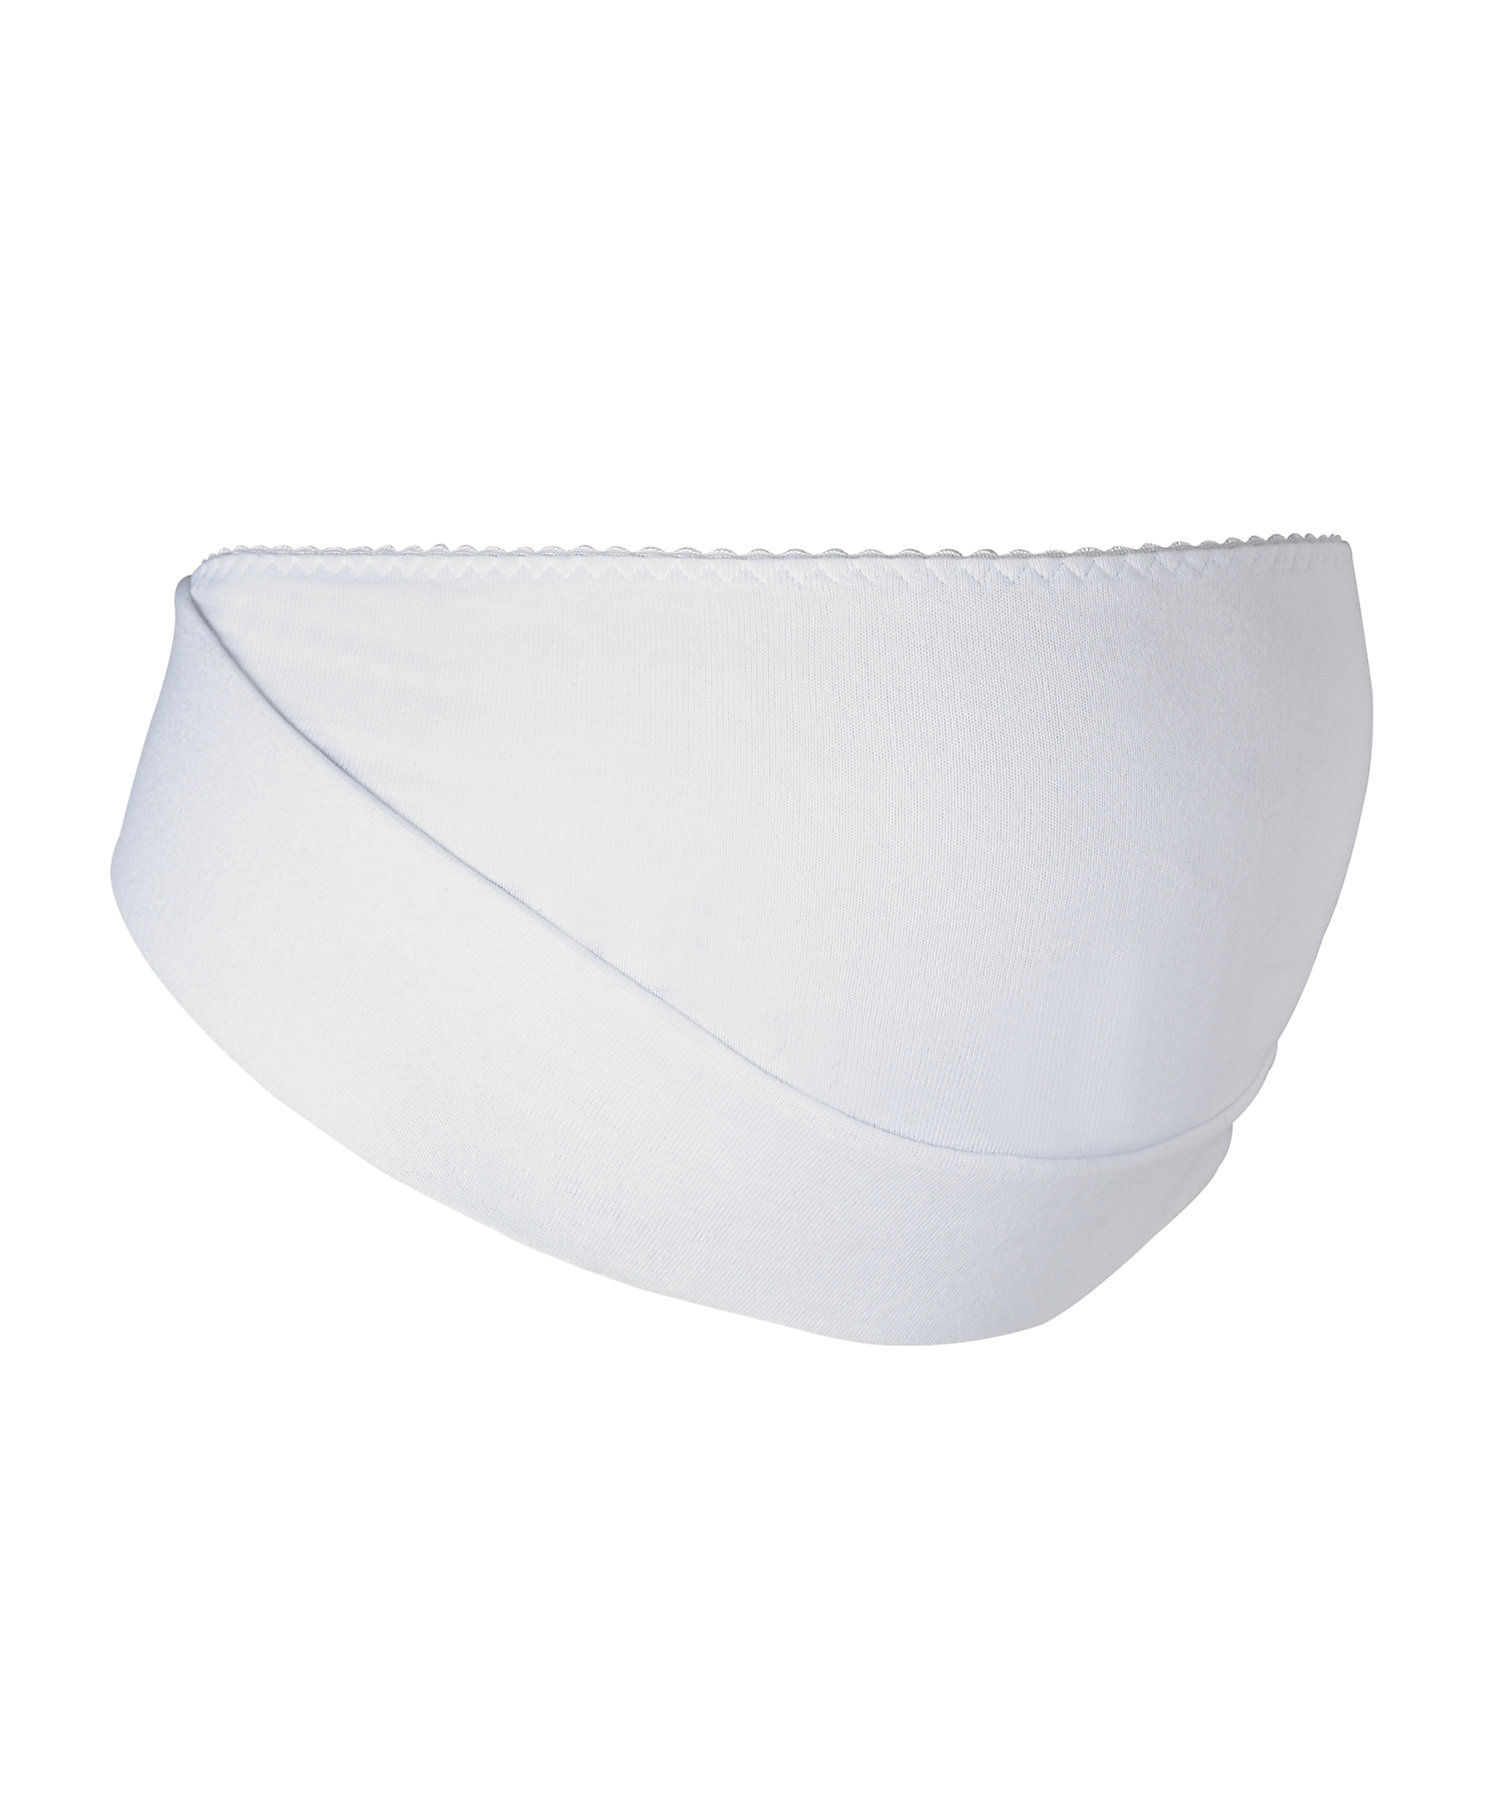 Mothercare | Women Maternity Belly Support  - White